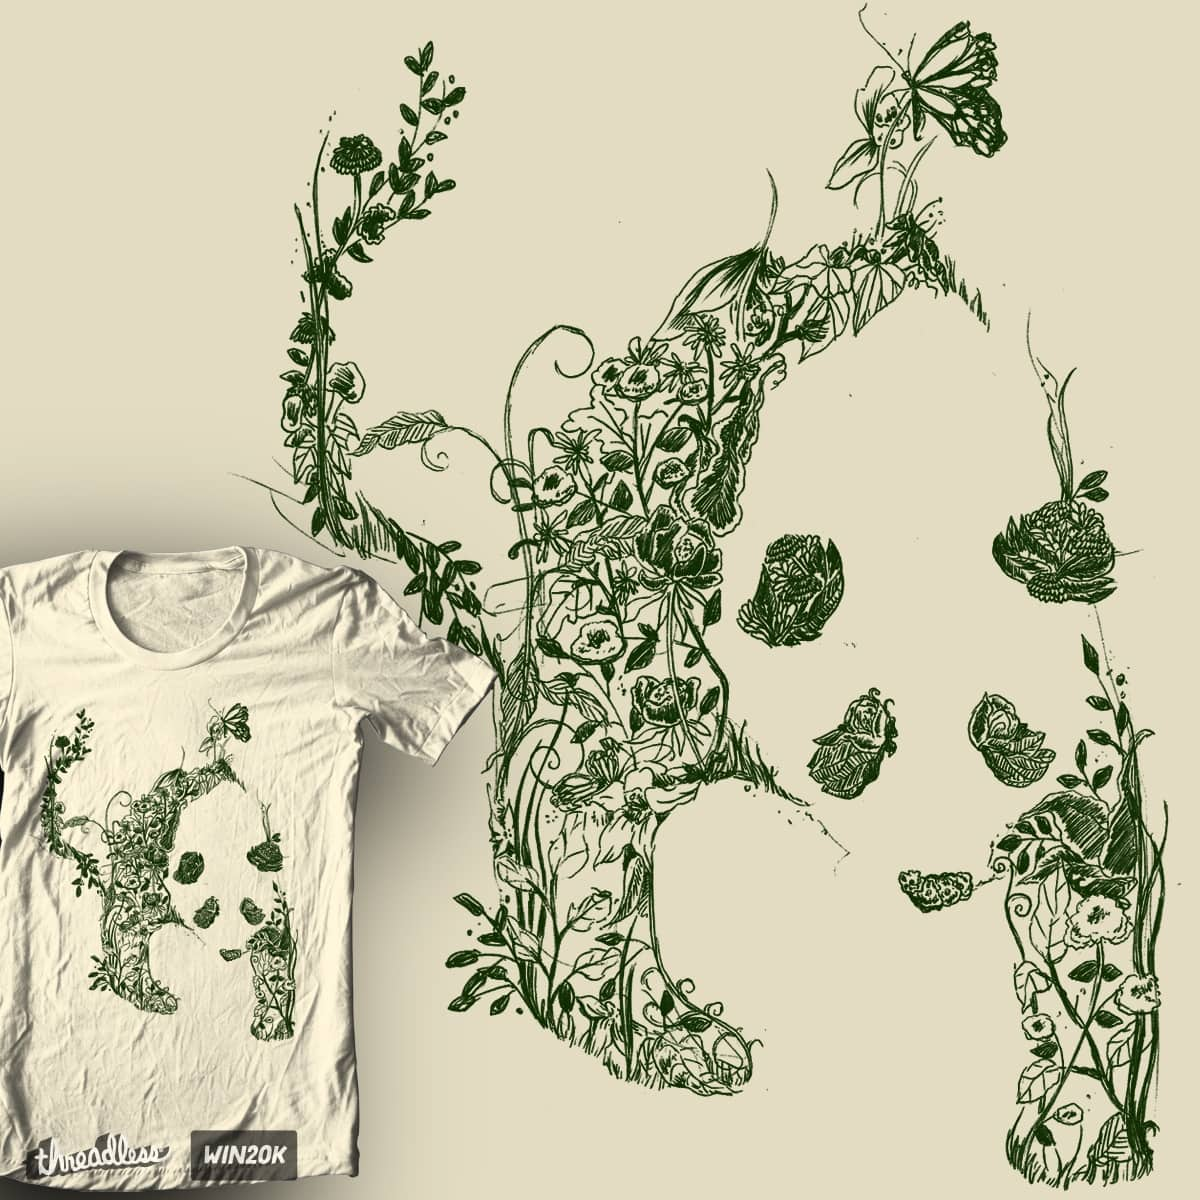 Sketch of Nature by tobiasfonseca on Threadless